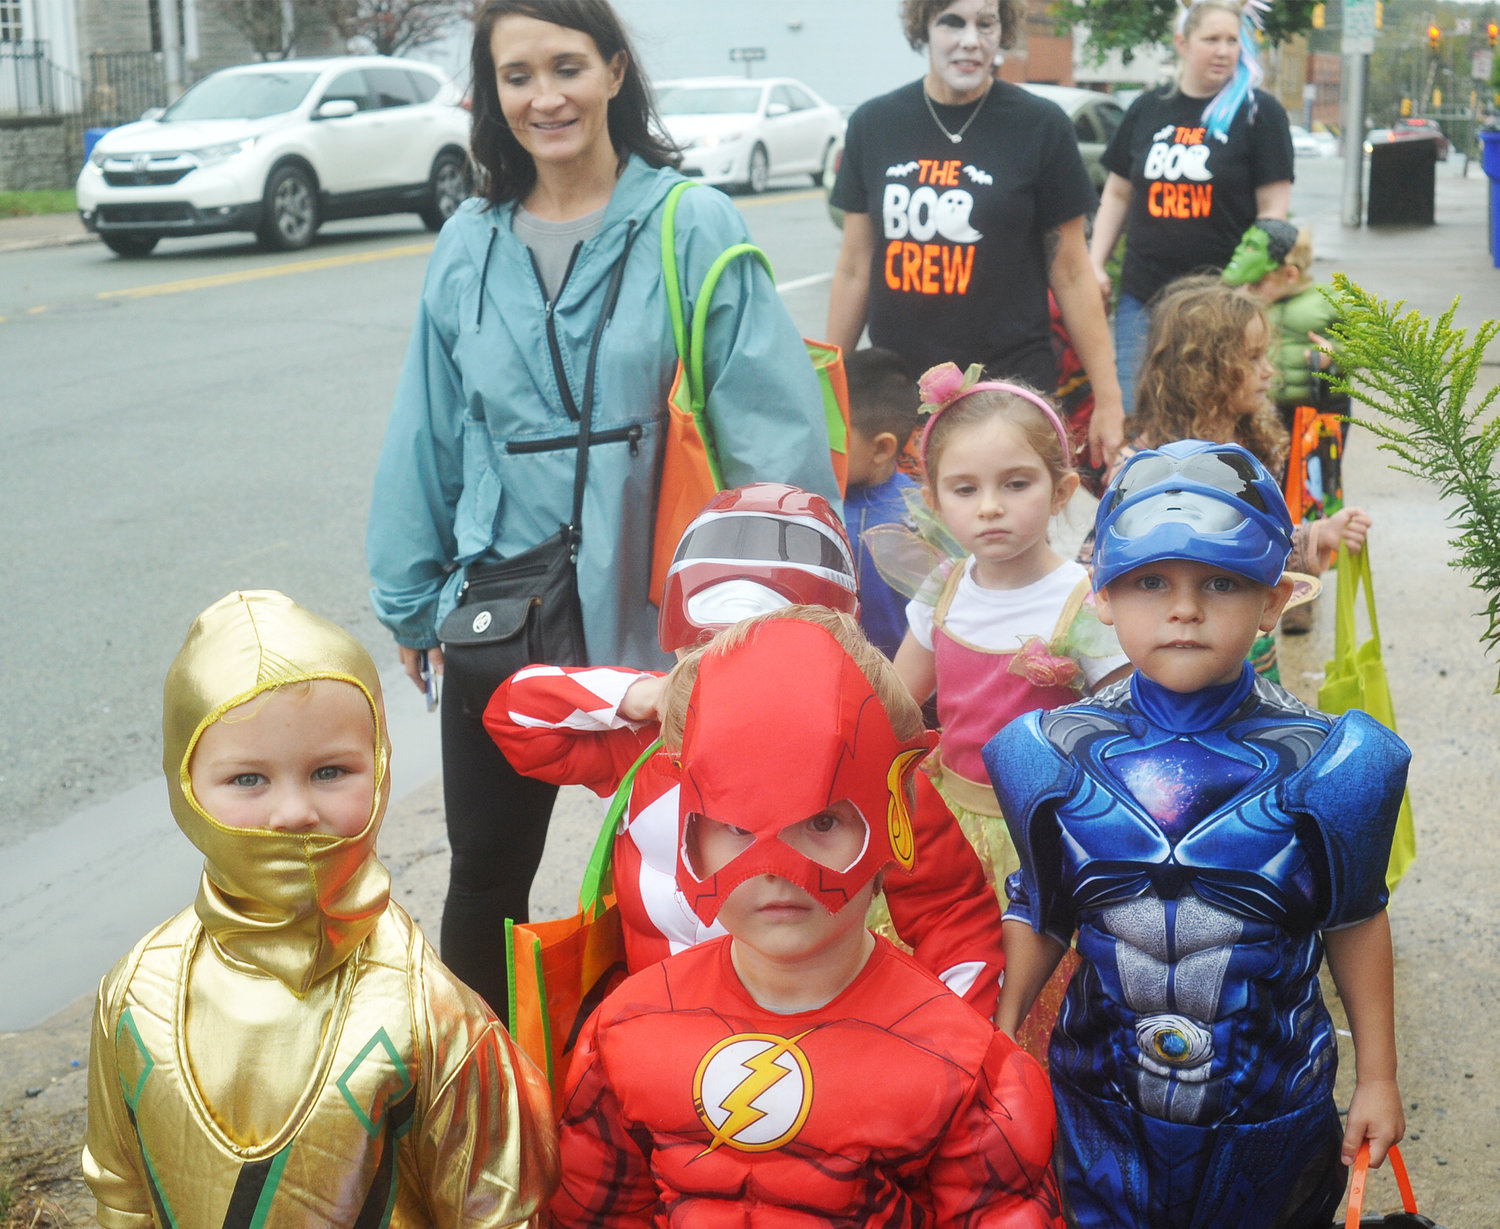 The Flash and other characters made an appearance in downtown Siler City last Thursday for Halloween. The students and staff members from the Children's First day care and Learning Center took a brief tour on the overcast day to collect candy from shop-keepers.